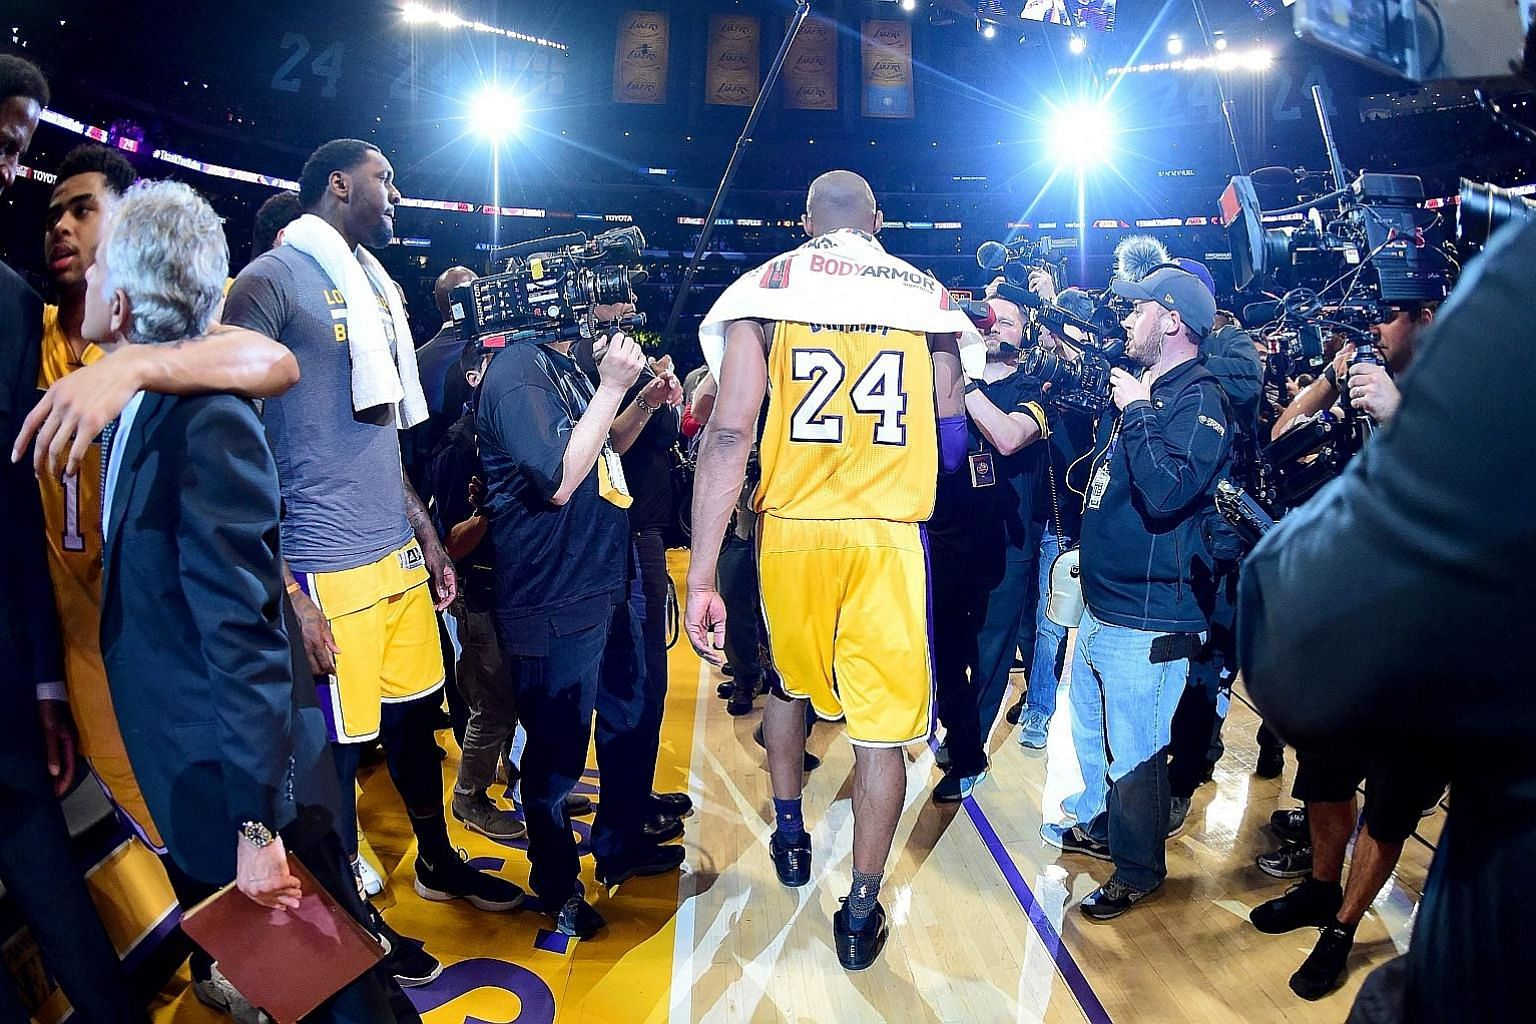 Kobe Bryant of the Los Angeles Lakers walks towards the tunnel for the last time in his 20-year NBA career after scoring 60 points in the tense 101-96 victory against the Utah Jazz on Wednesday.